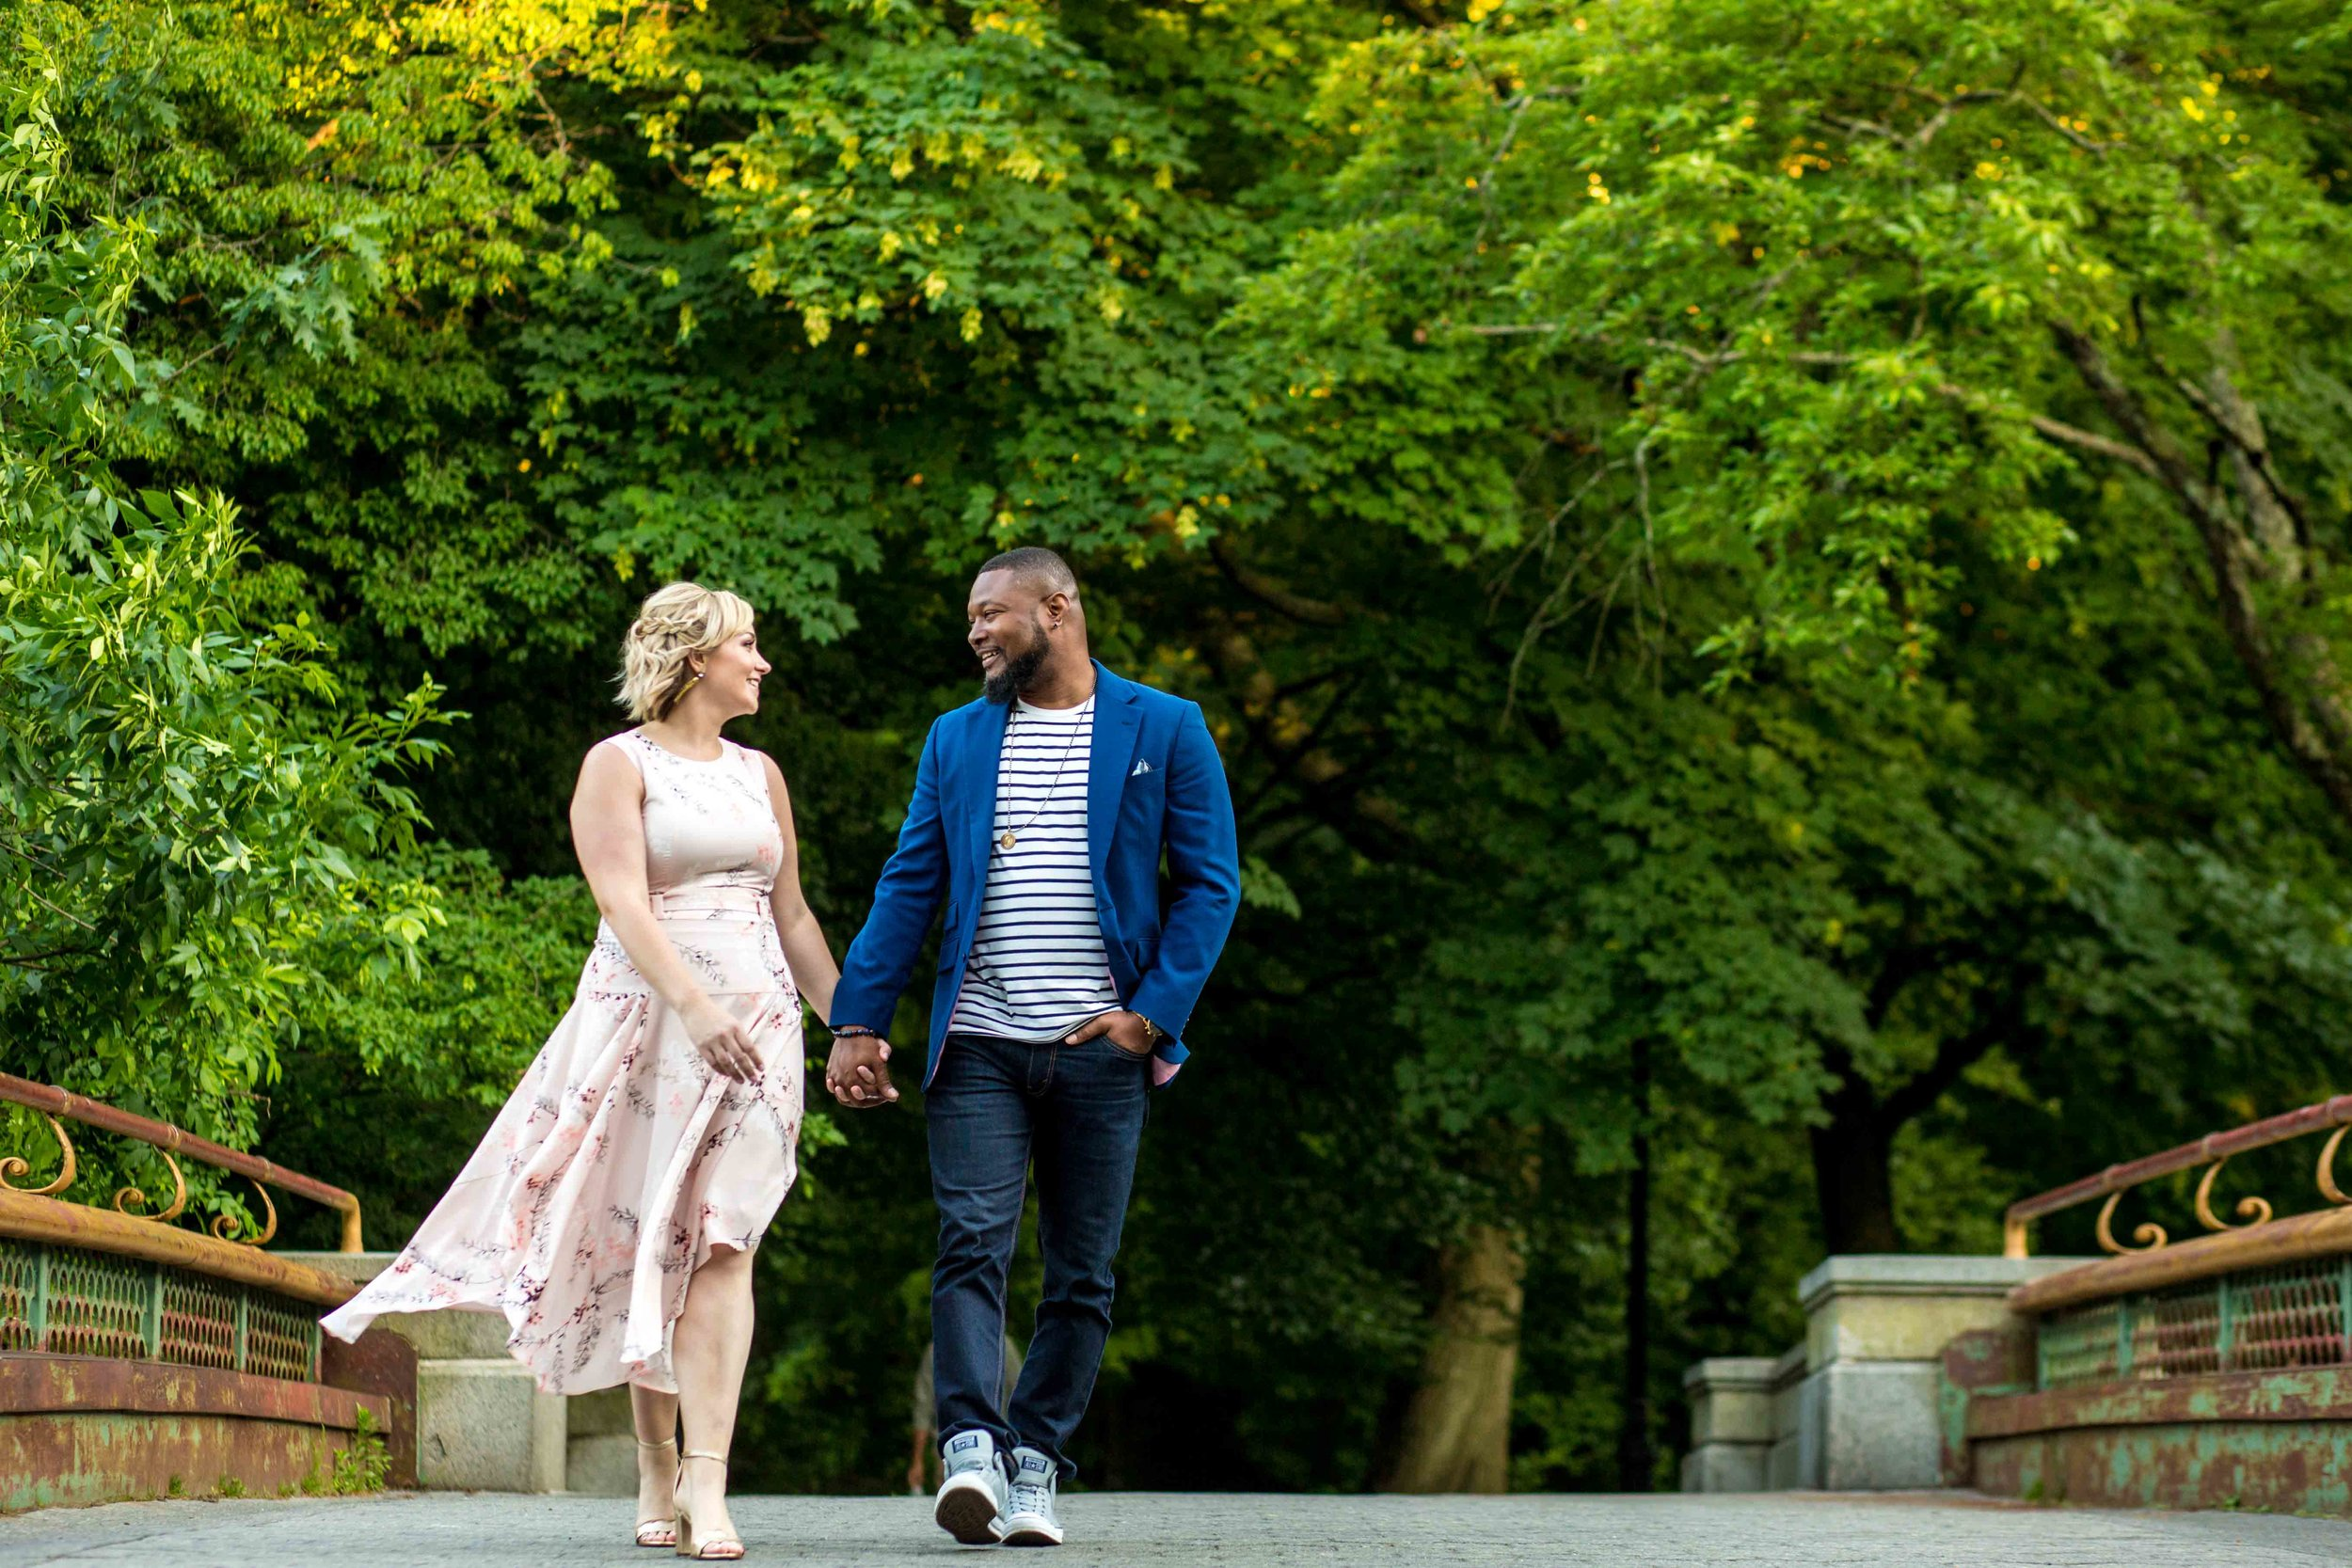 Prospect Park Engagement Photo Shoot Brooklyn NYC New York Wedding Photographer_5.jpg